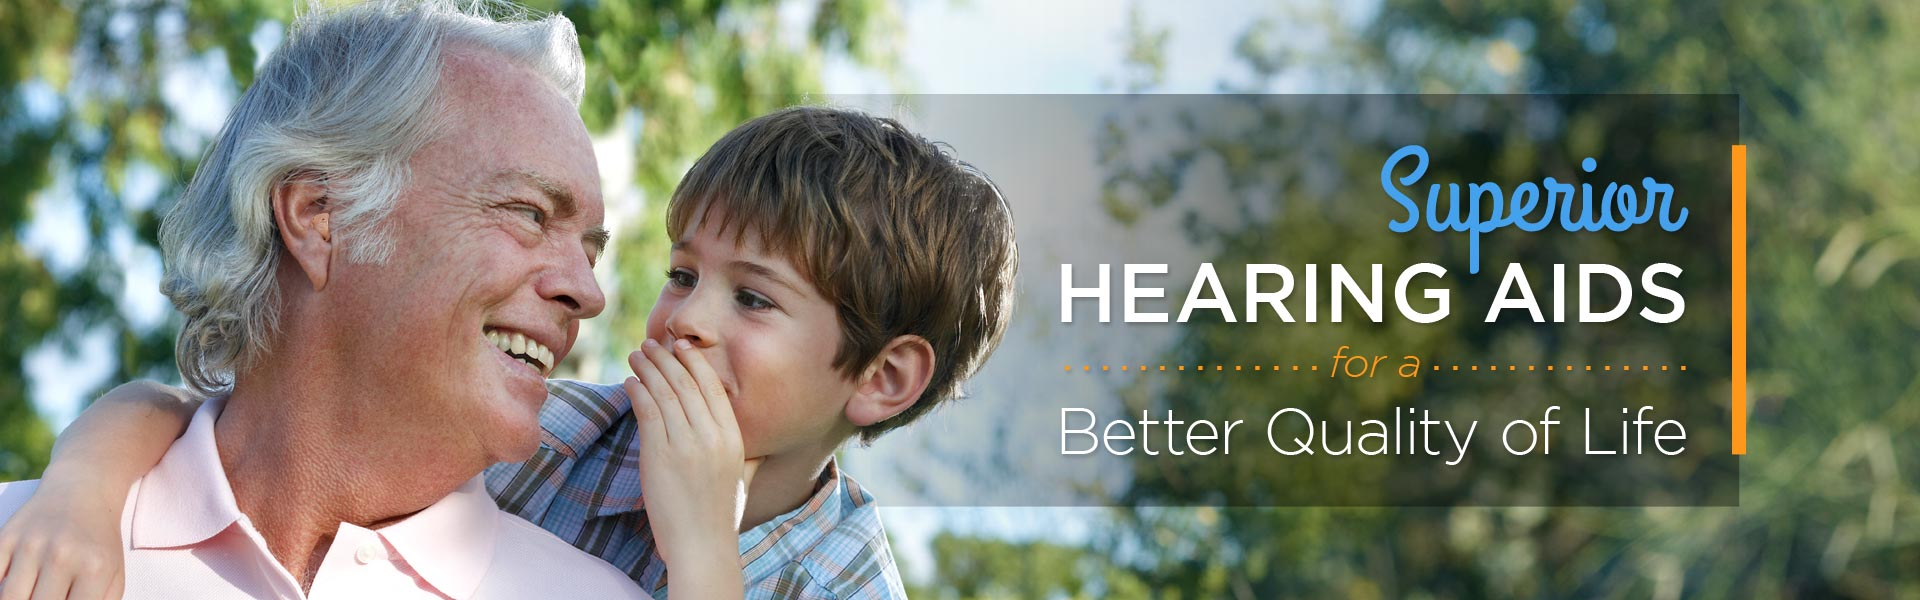 superior hearing aids for a better quality of life